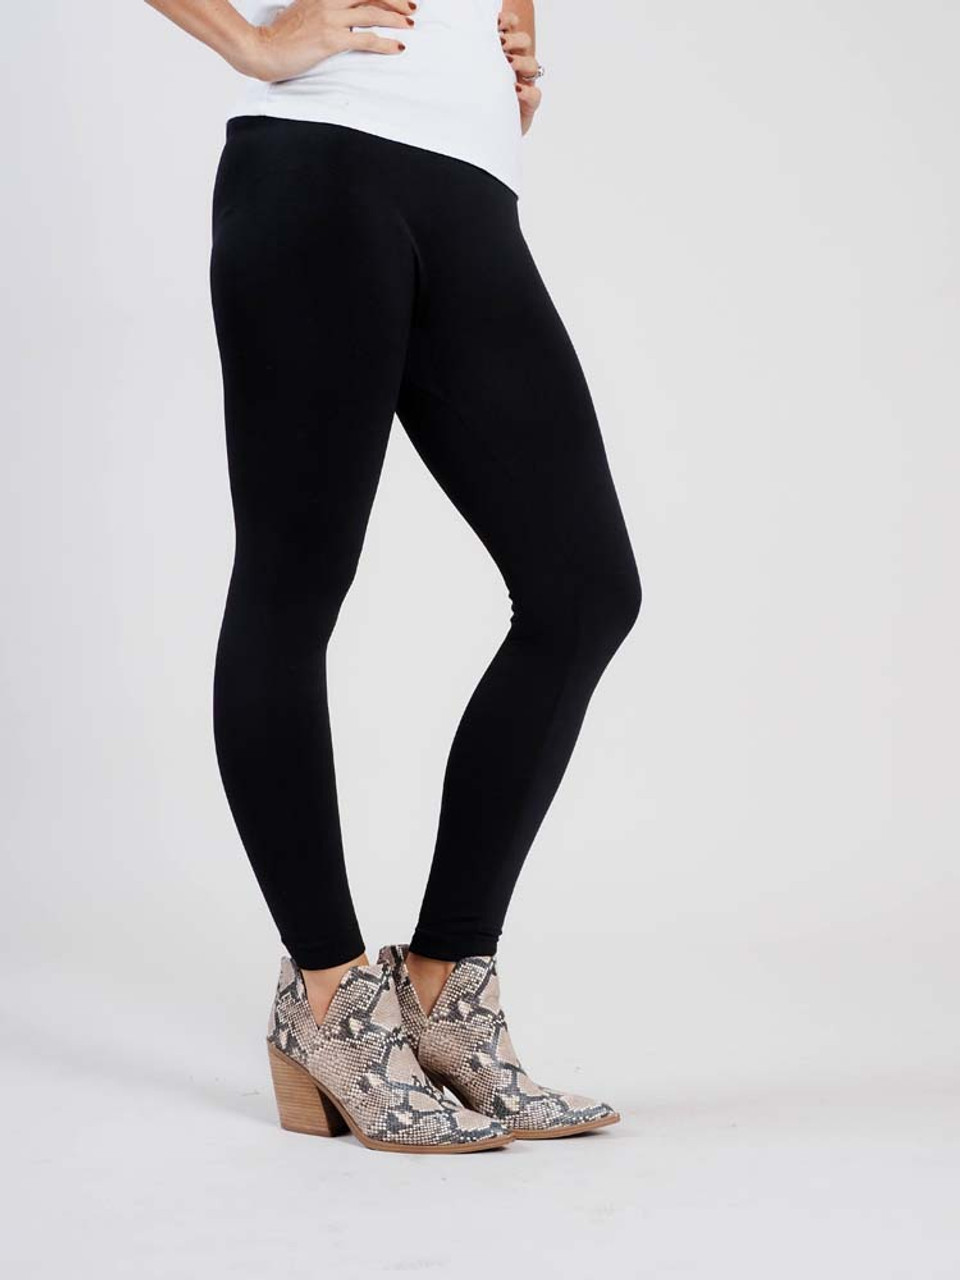 """Black Comfortable and versitable fleece-lined leggings, breathable fabric, smooth mid-rise fit, seamless, flattering 4"""" waistband, full length cut with banded ankle"""